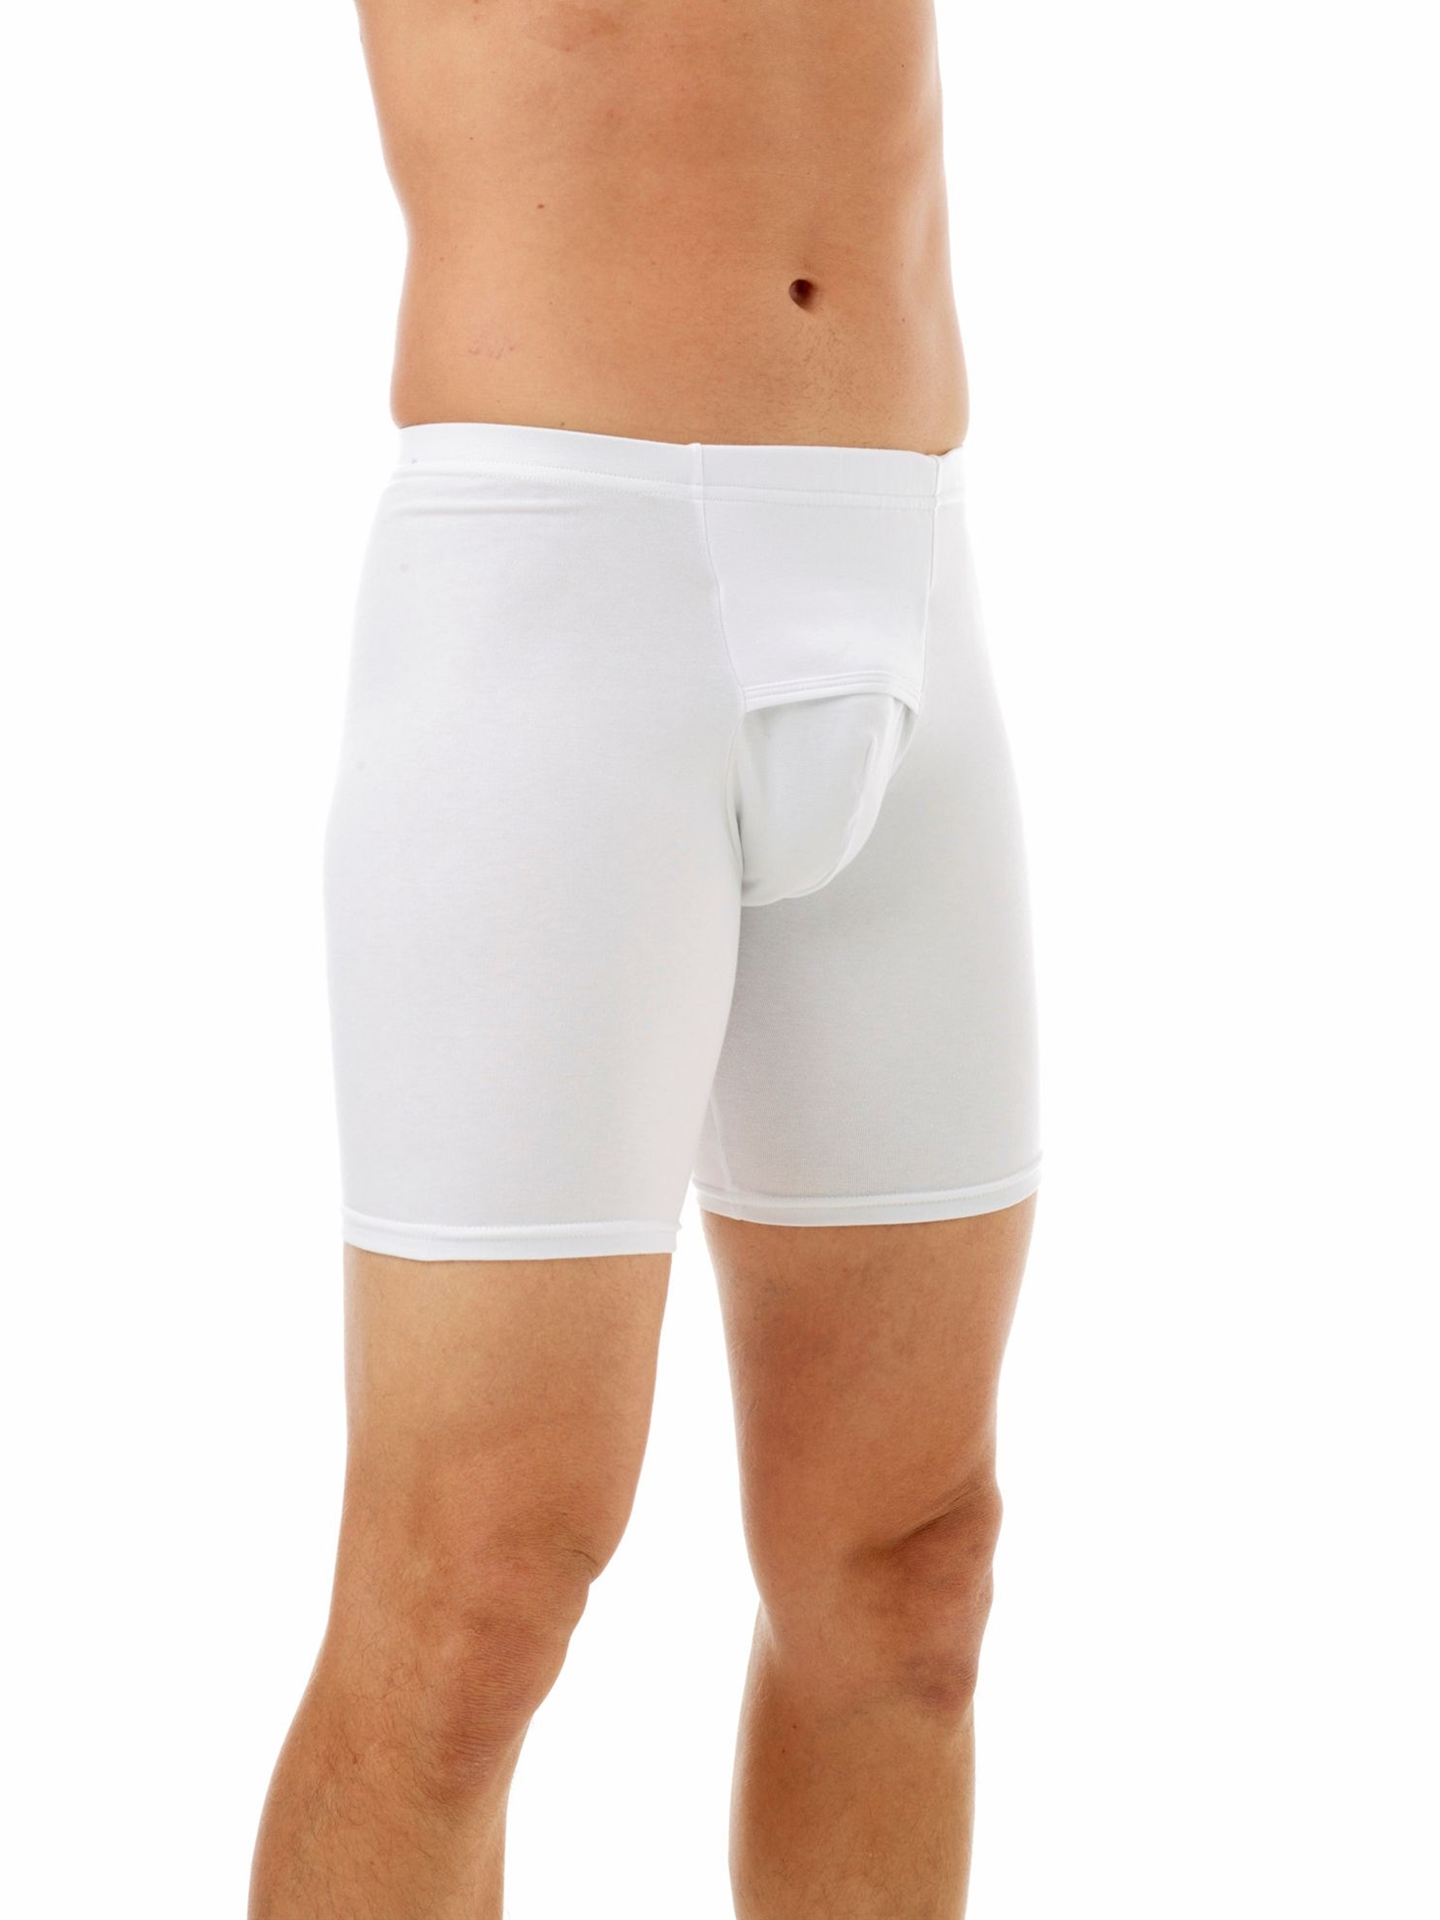 inguinal hernia prevention brief and for scrotal support